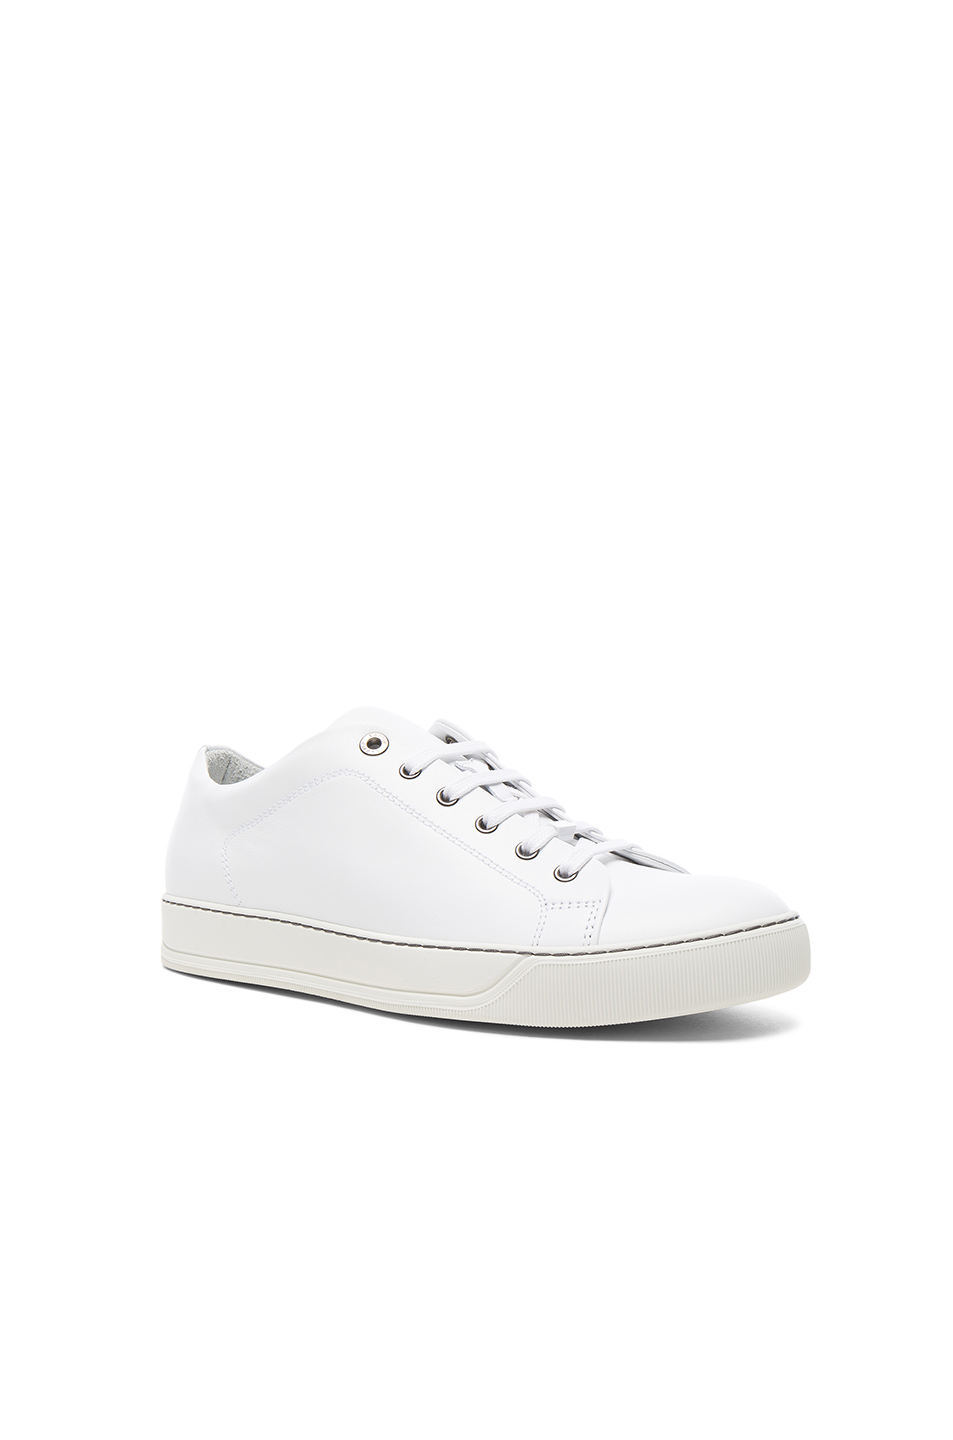 Lanvin Leather Sneakers in White